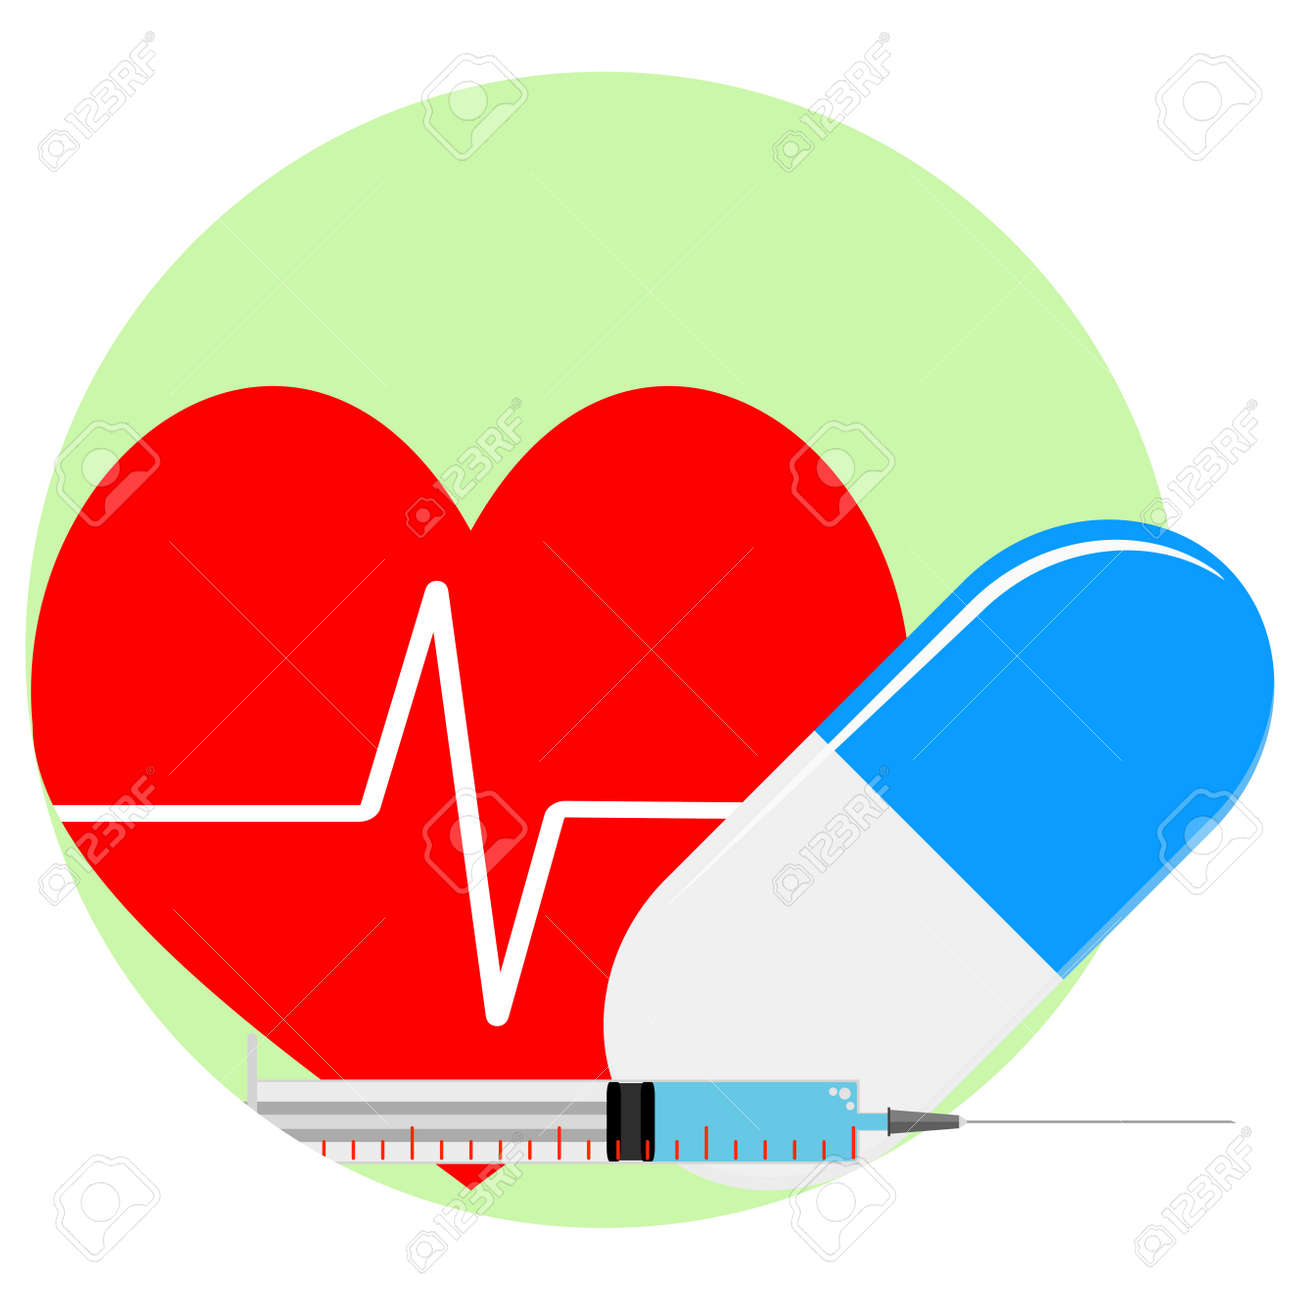 Heart reanimation icon injection and pill for healthy heart banco de imagens heart reanimation icon injection and pill for healthy heart ccuart Choice Image